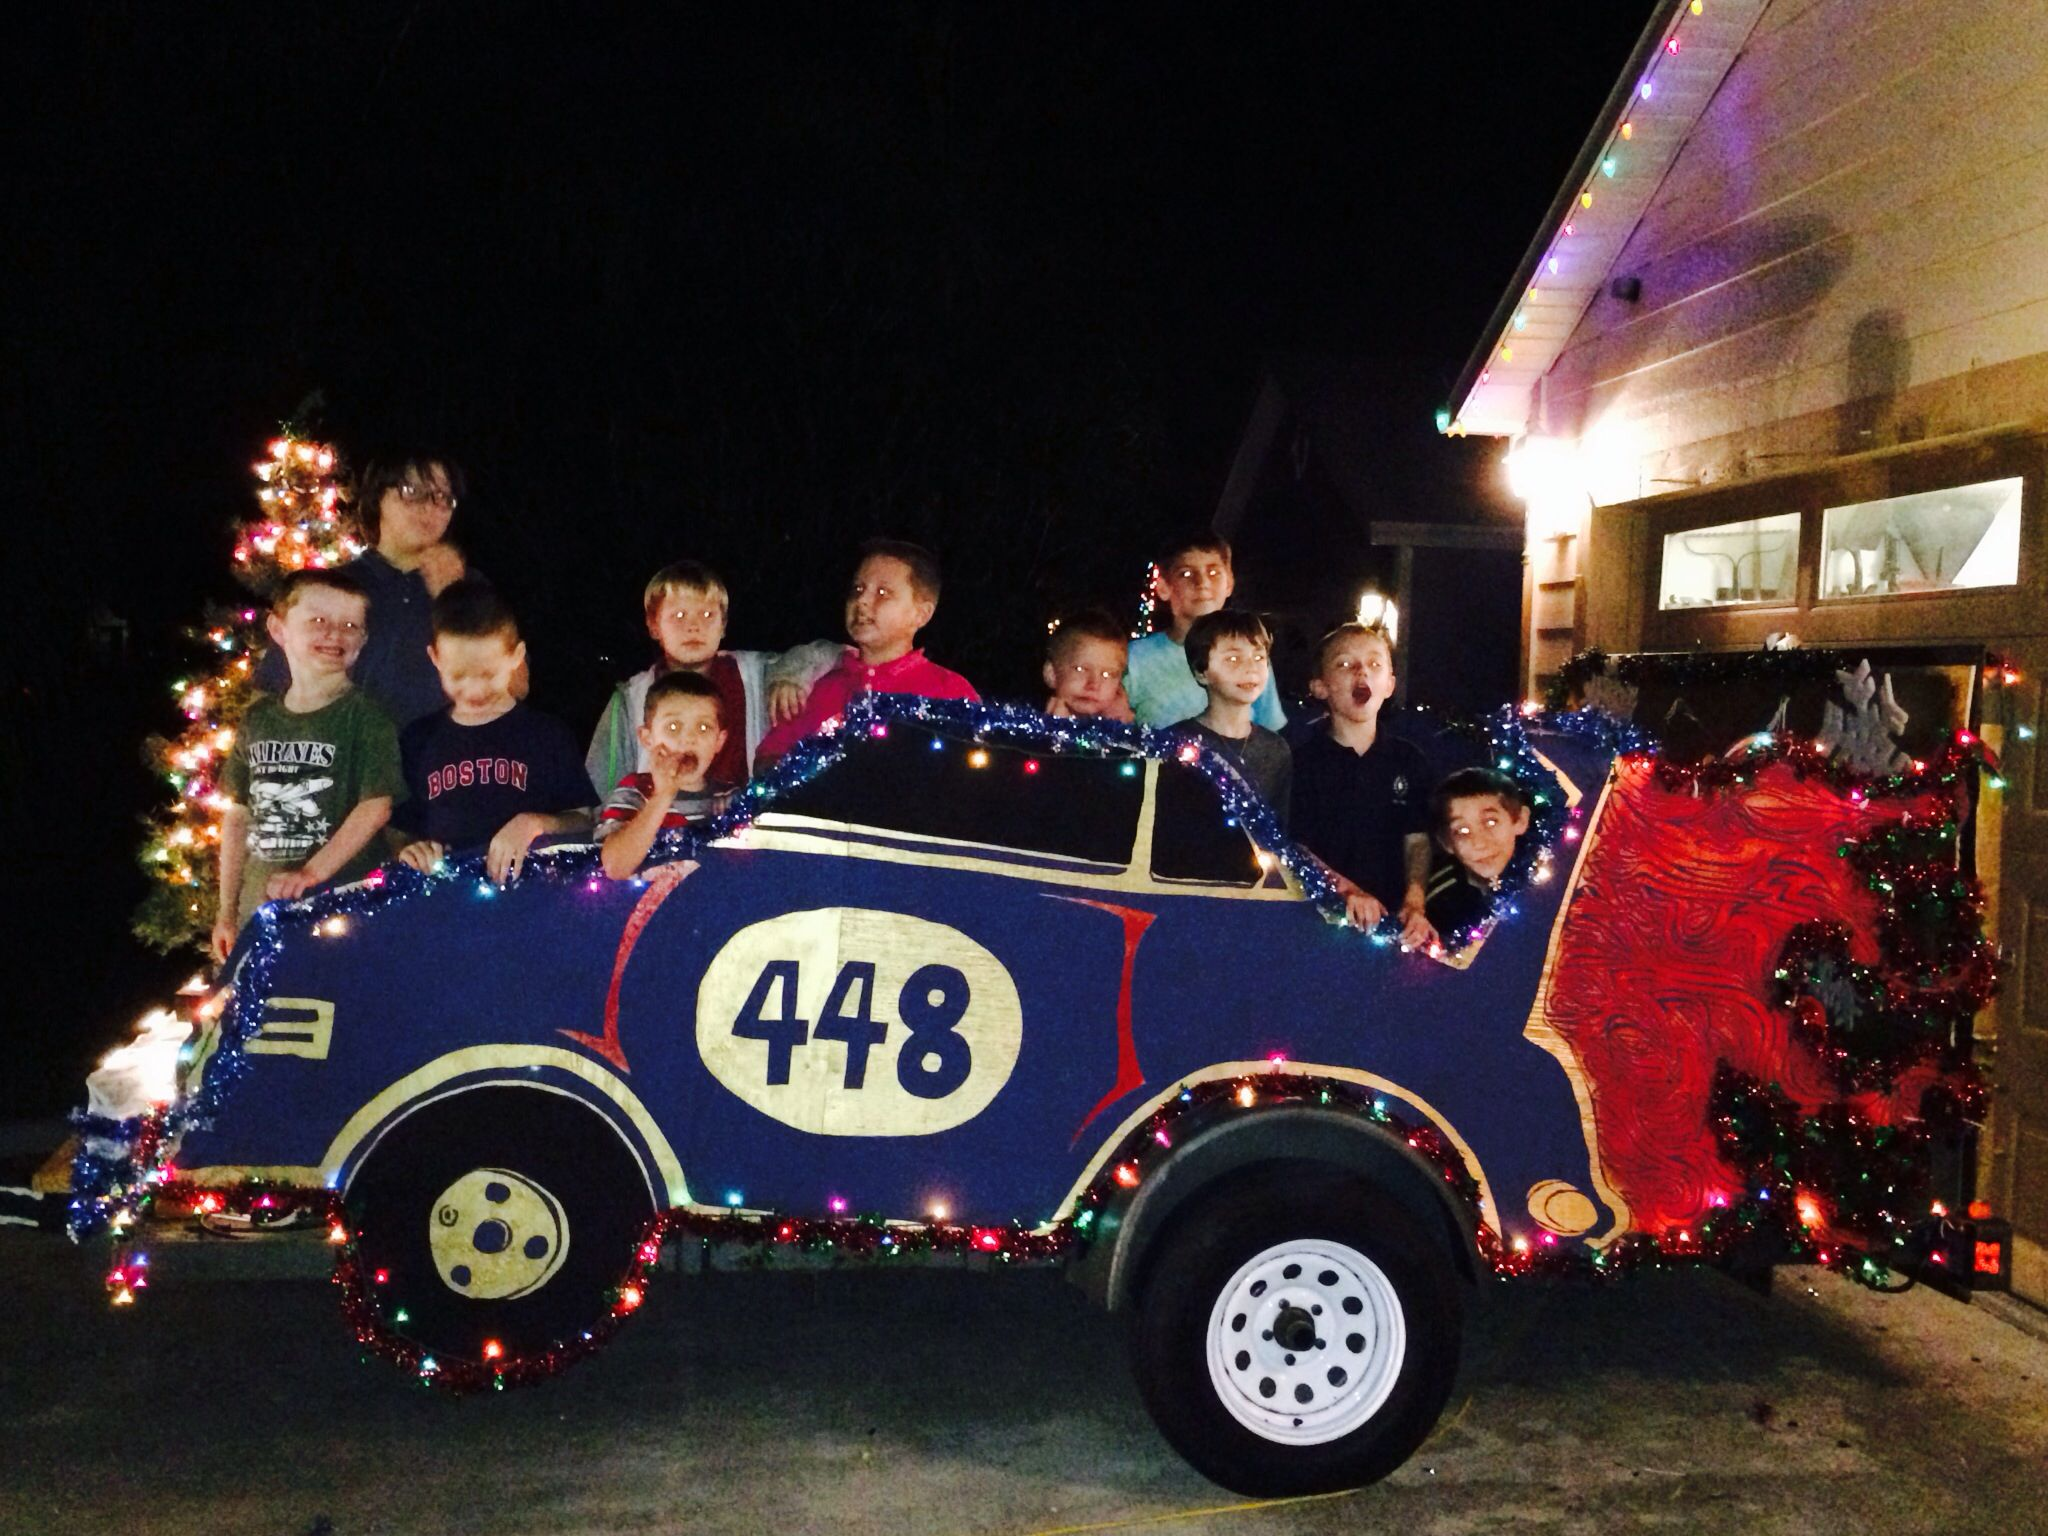 Yes! Cub Scout Christmas Float 2013!